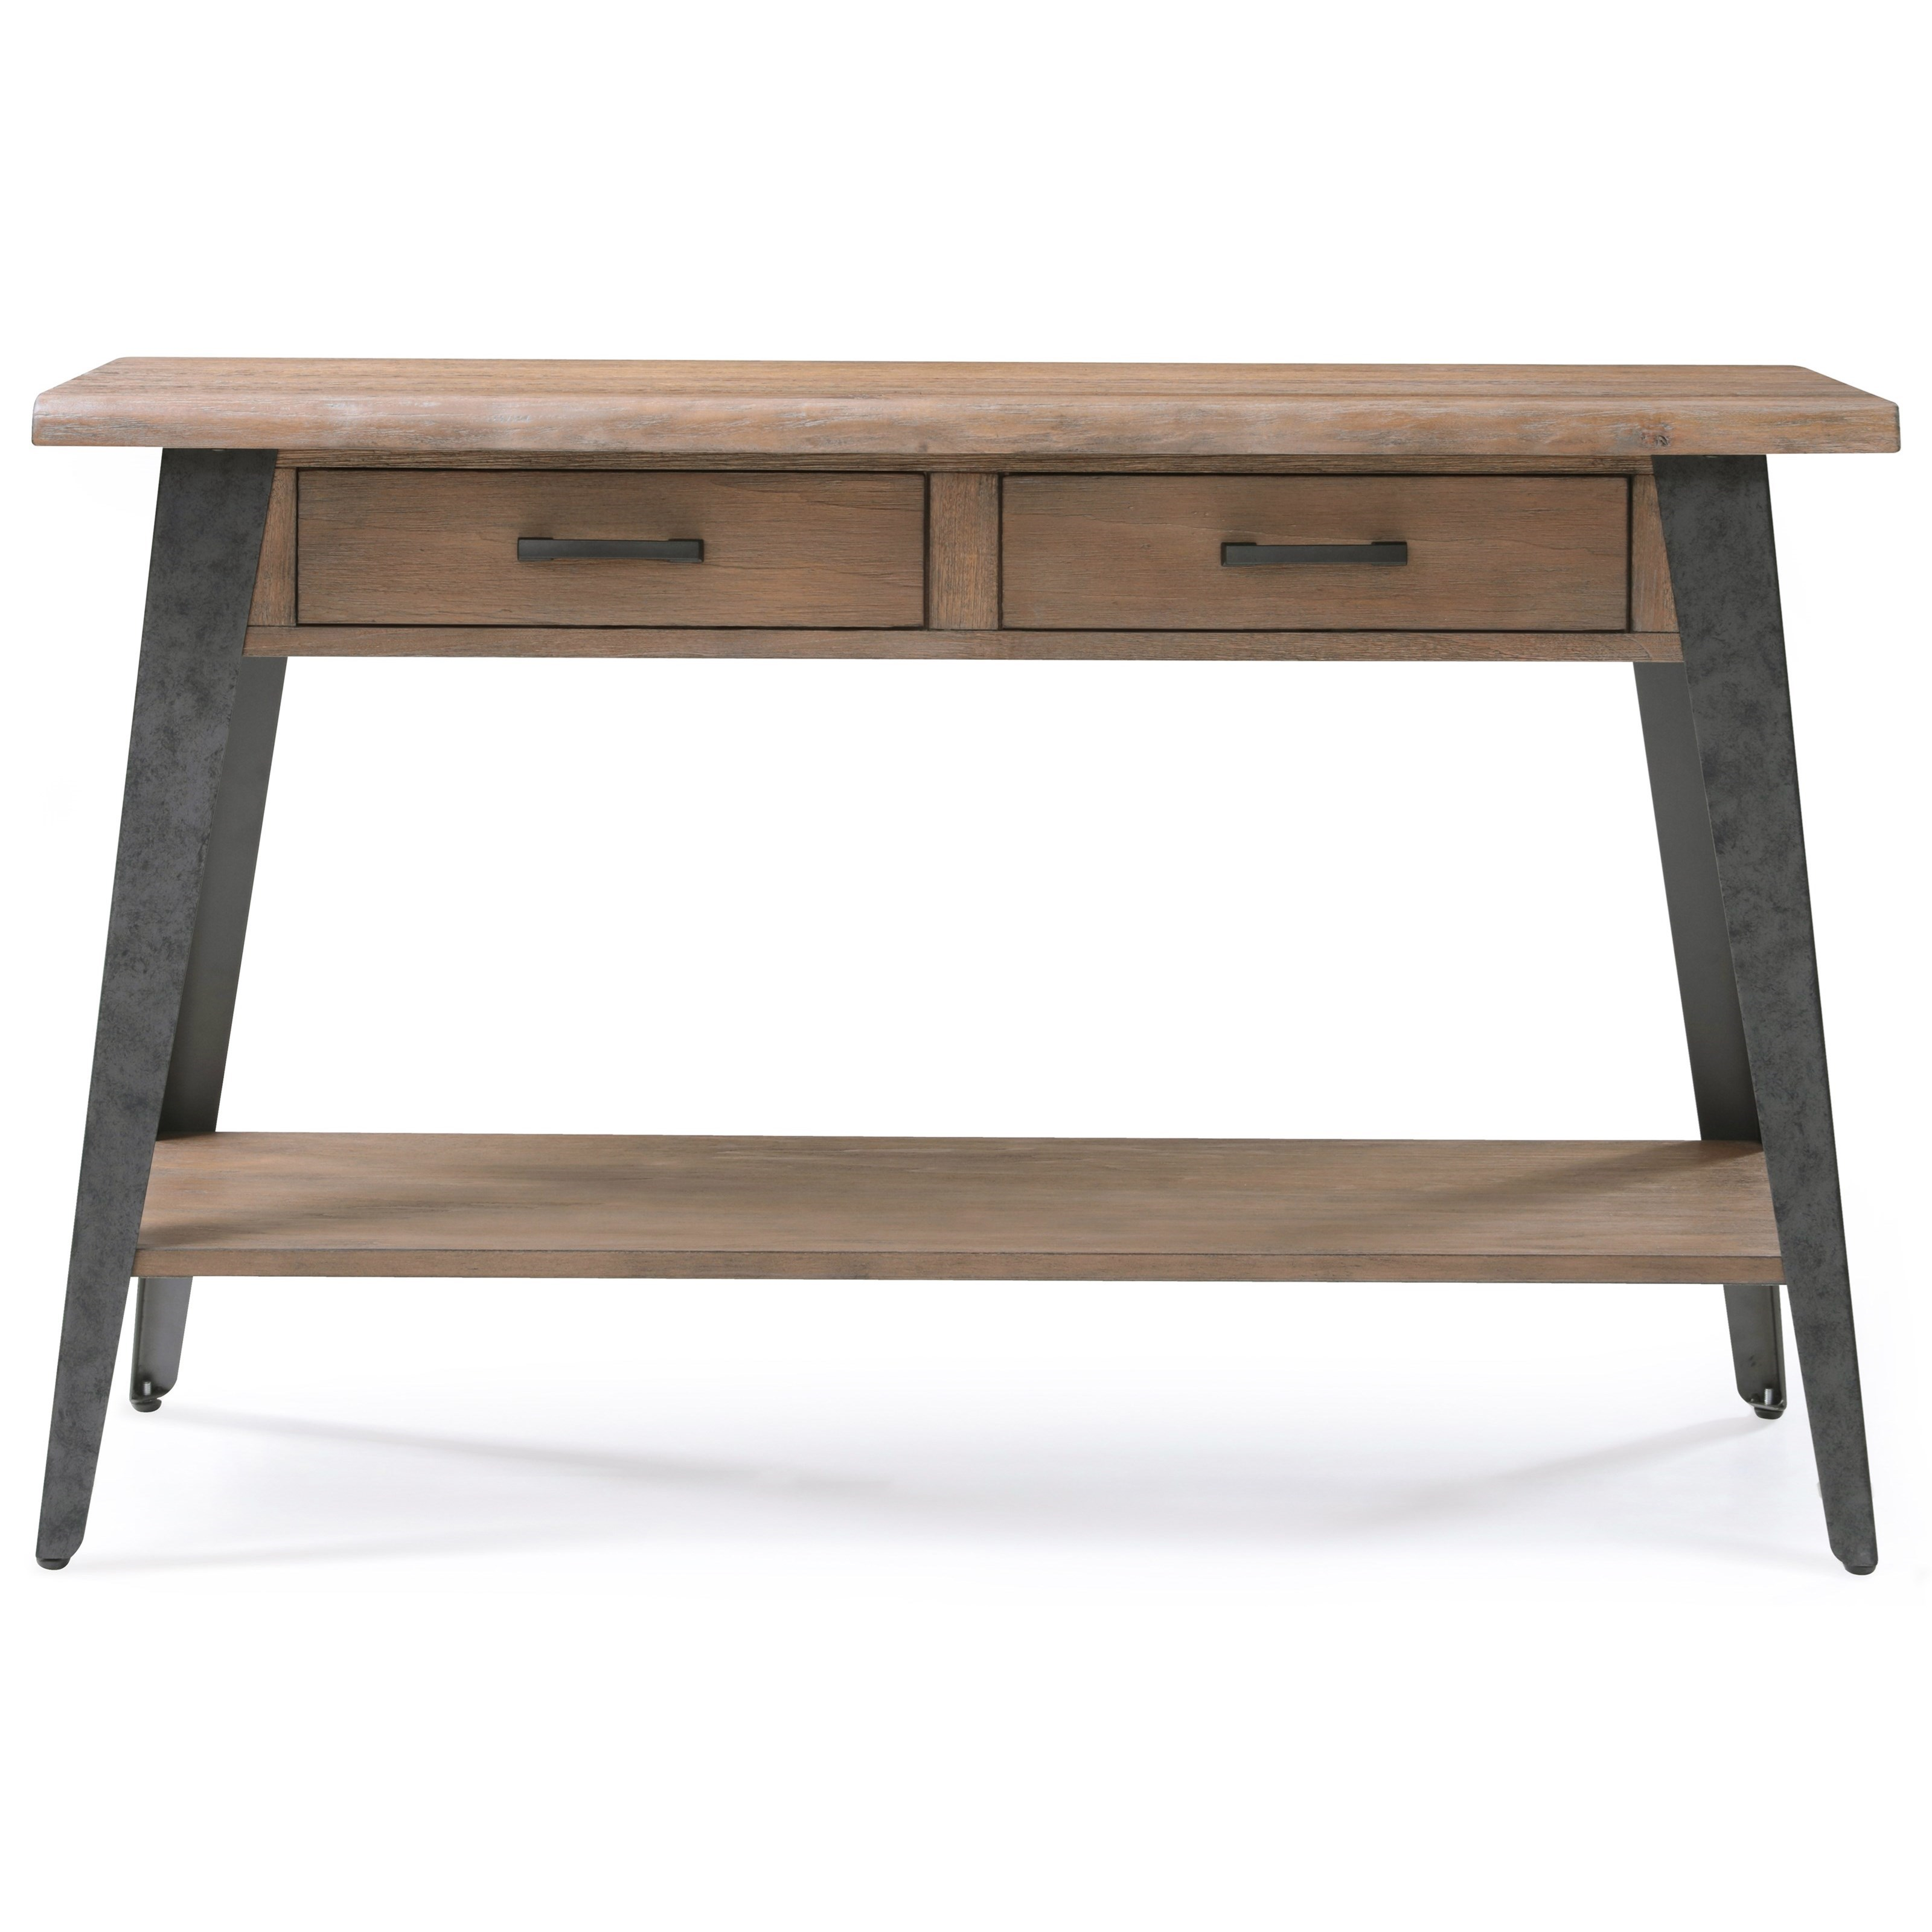 Harper's Mill Sofa Table by Emerald at Northeast Factory Direct